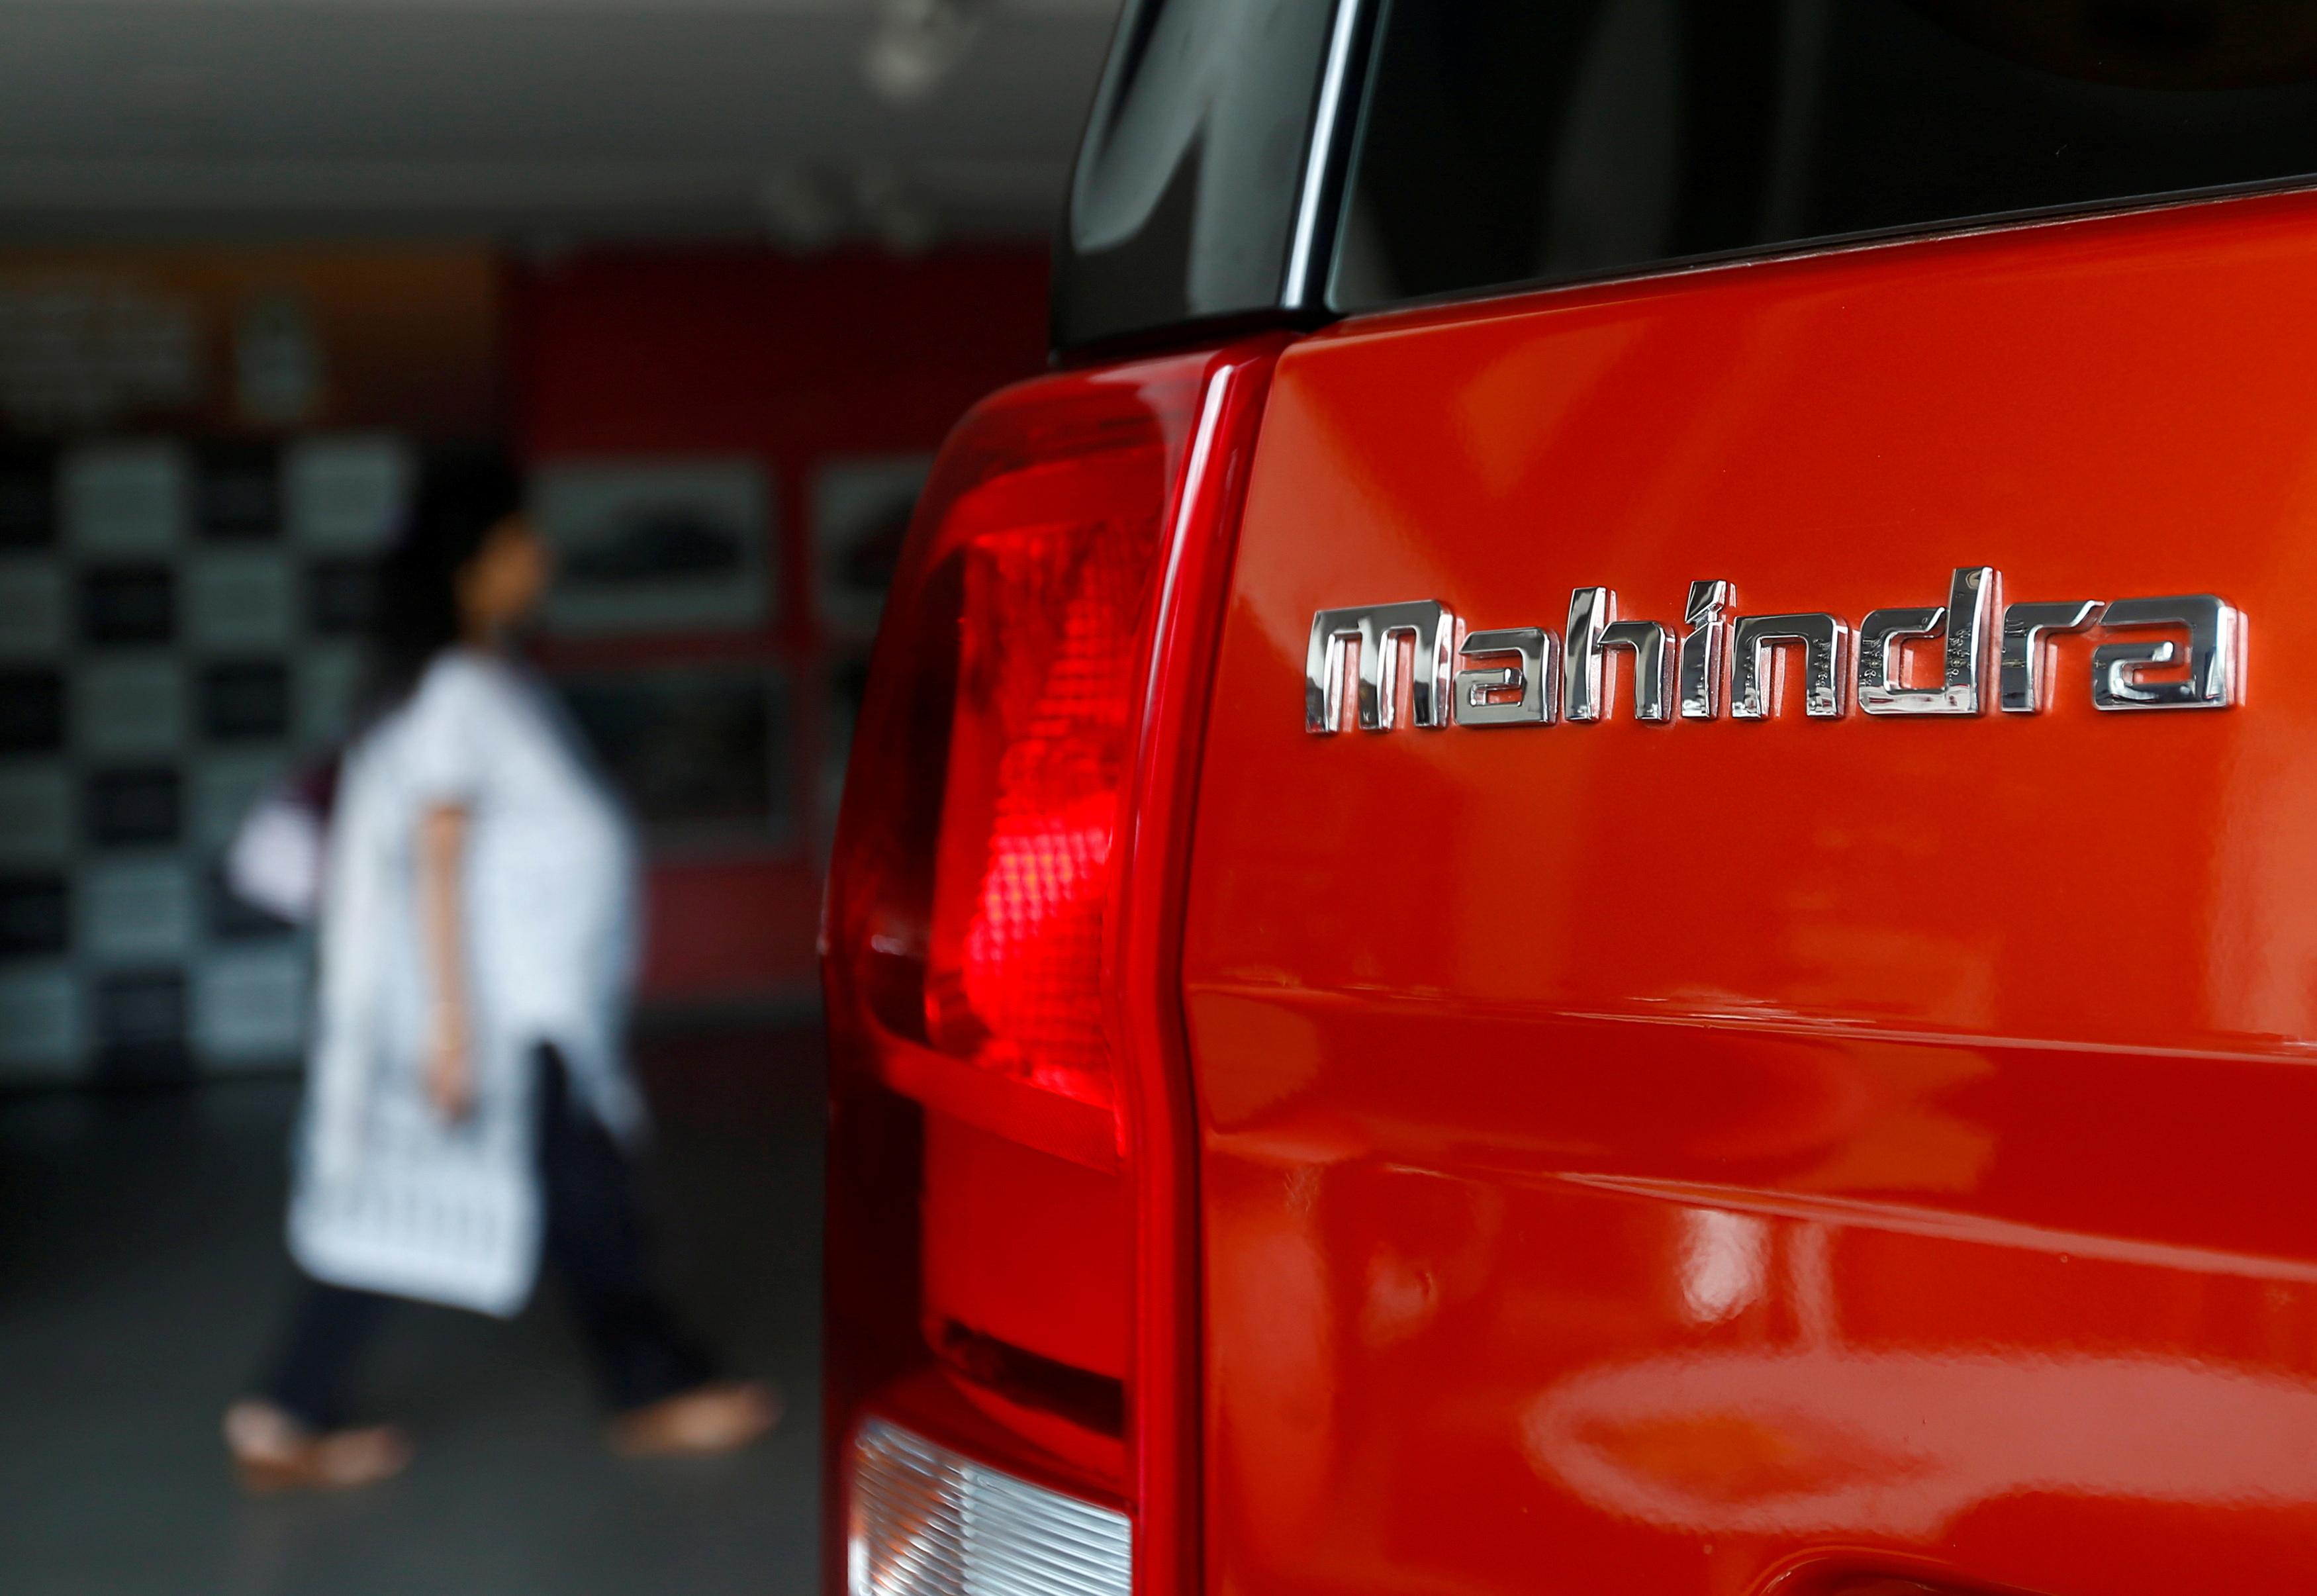 An employee walks past a Mahindra TUV300 car at a showroom in Mumbai, India, August 30, 2016. Picture taken August 30, 2016. REUTERS/Danish Siddiqui/File Photo